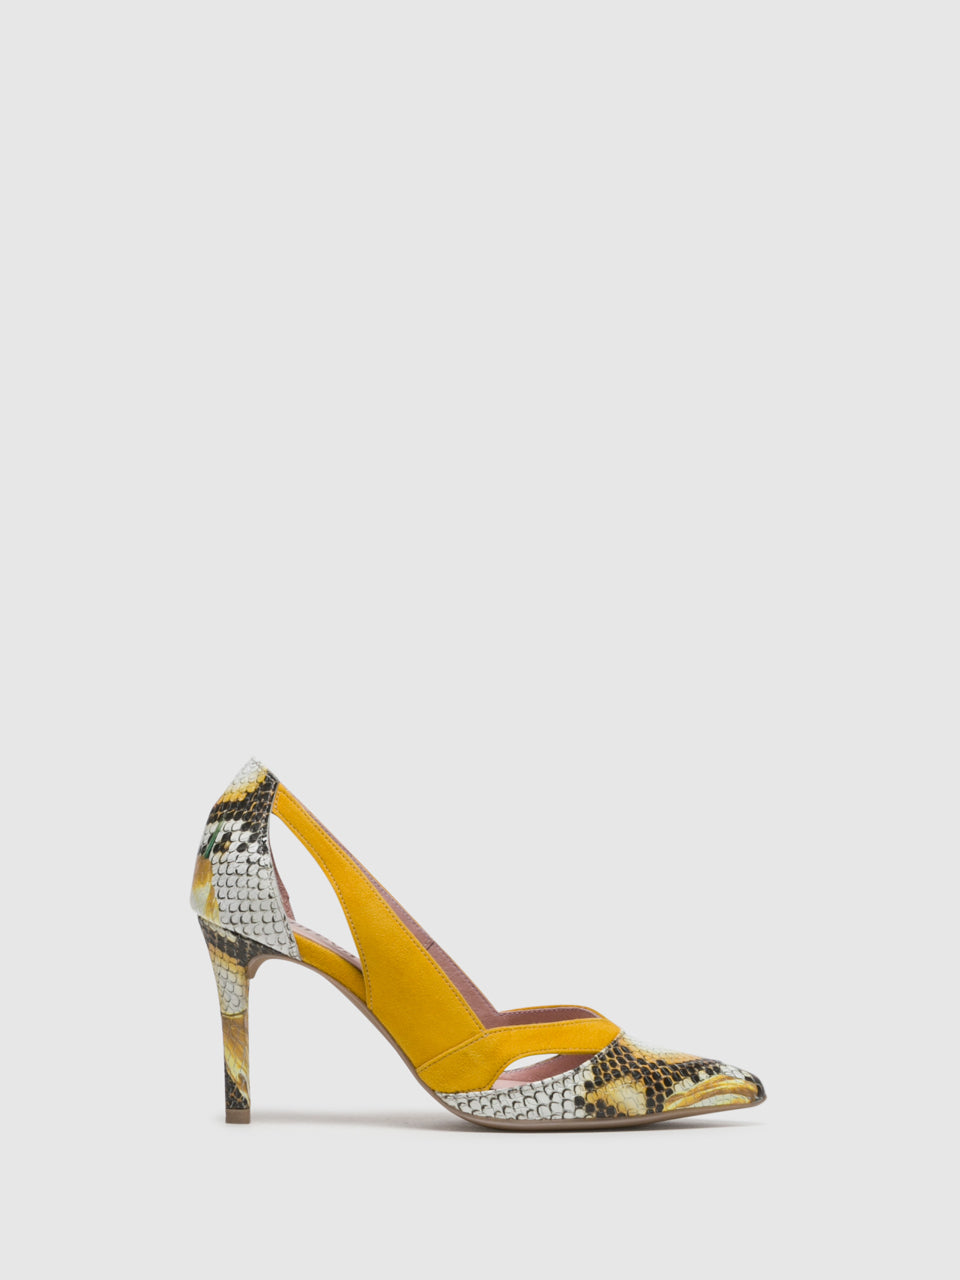 Foreva Yellow Stiletto Shoes